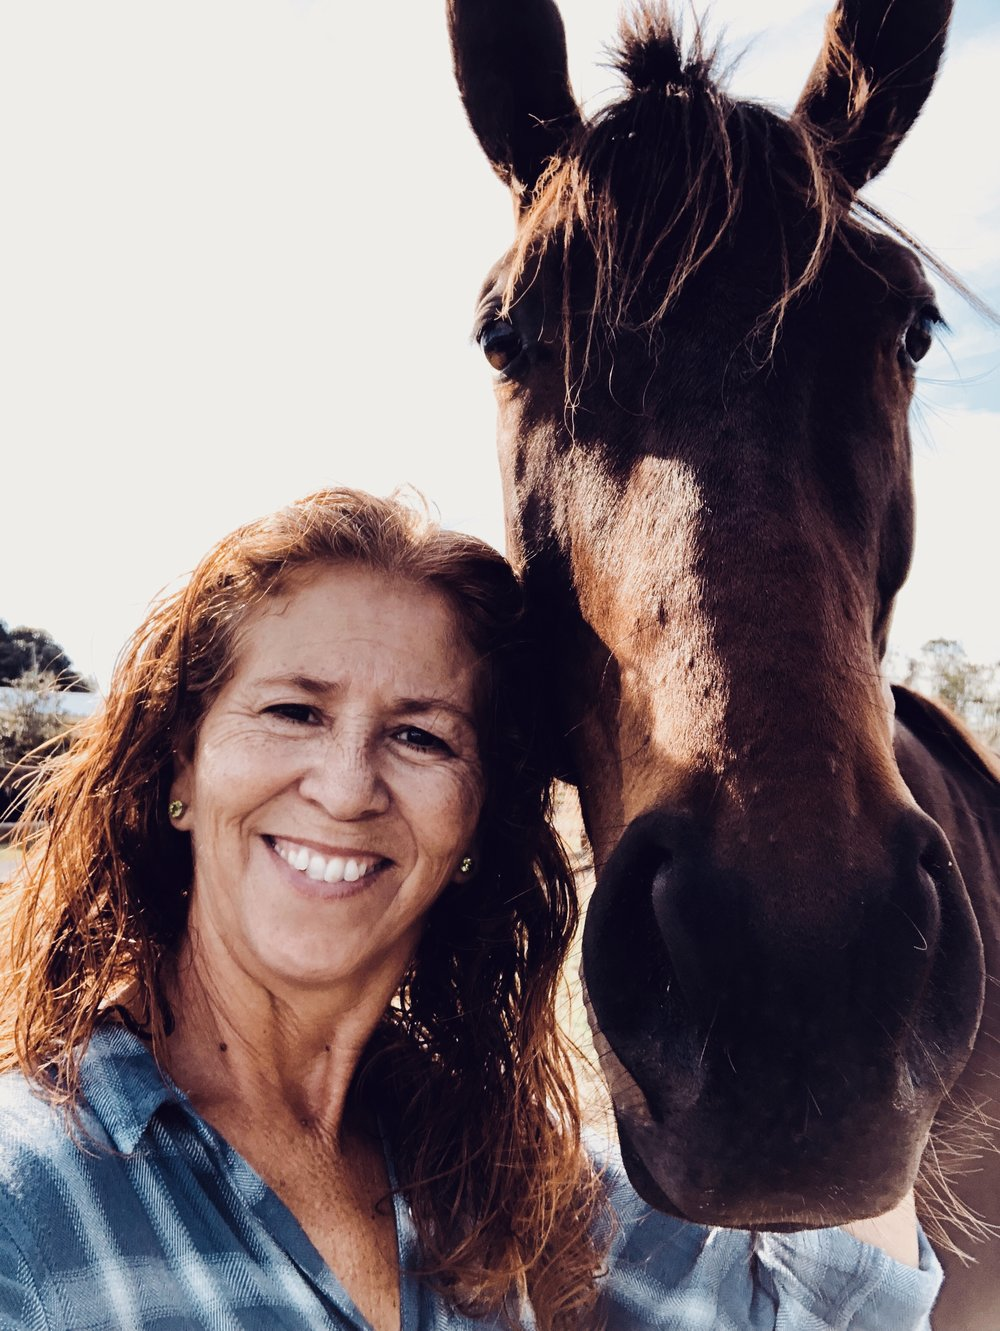 Apache Rose Horse Rescue & Sanctuary - Established in June of 2017501(c) Non-Profit OrganizationOur President: Linda Stewart - Dreamer, Lover of all things 4-legged.Our Mission: We save horses. We provide shelter, food & water, medical care, training & rehabilitation and aim to pair our rescues with their forever families. One horse at a time, one day at a time.